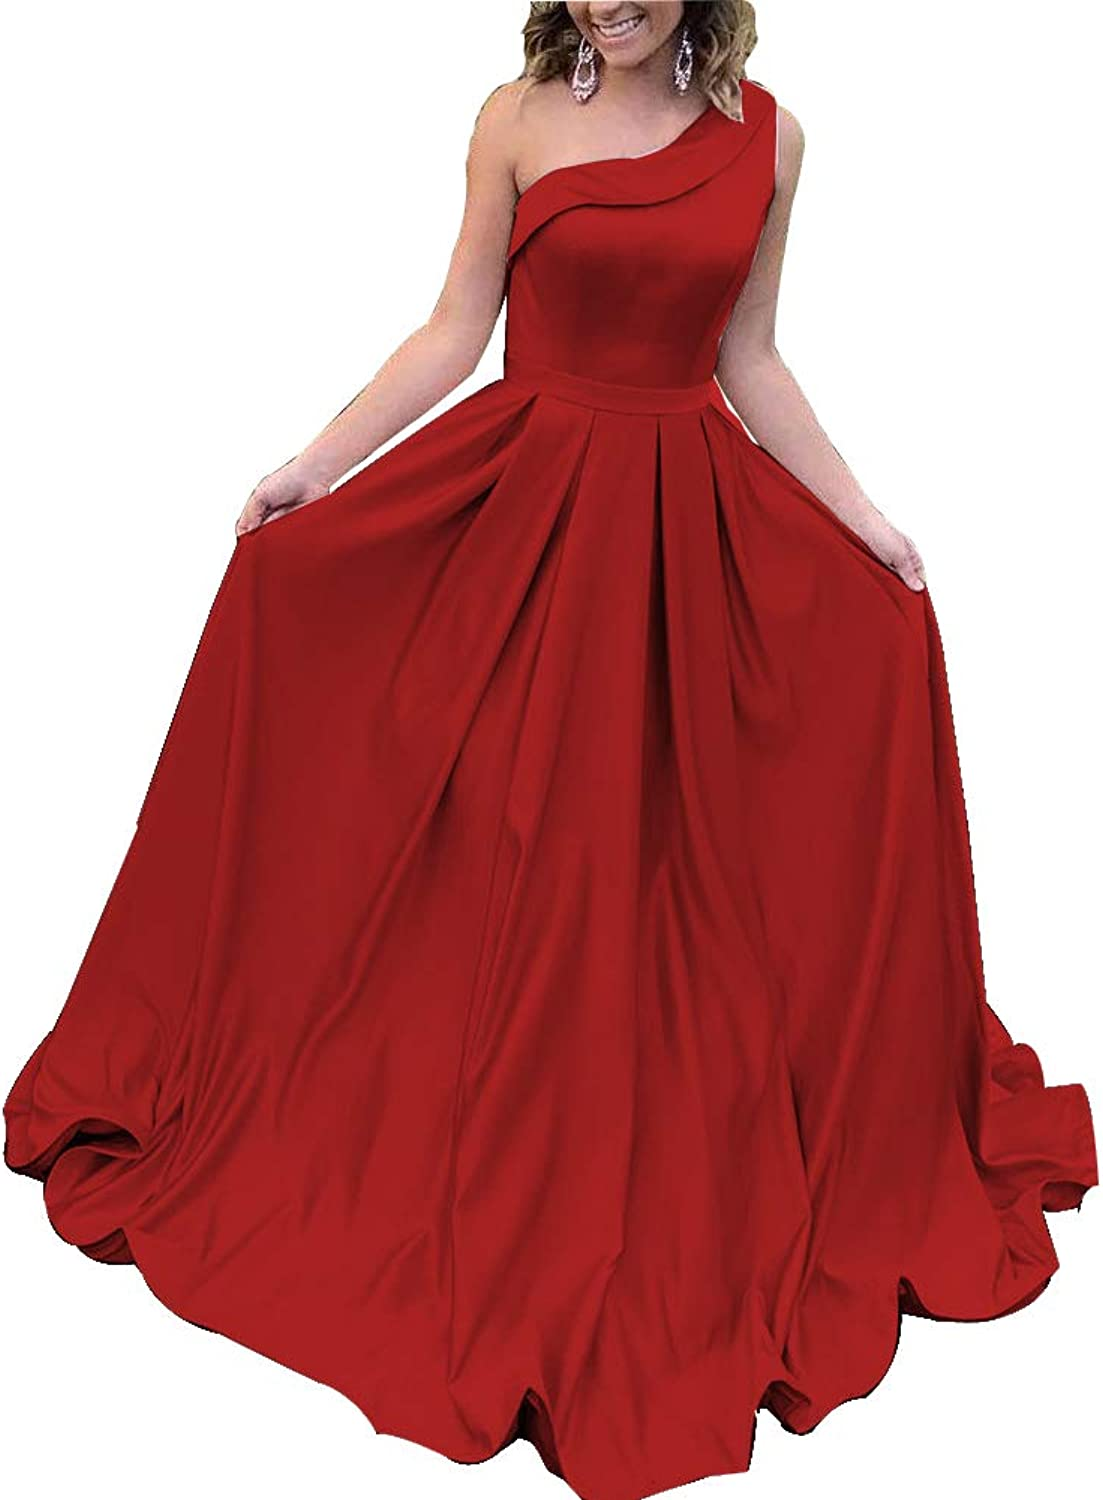 Stylefun Satin Long Prom Dress with Pocket one Shoulder A Line Evening Party Gown BD027